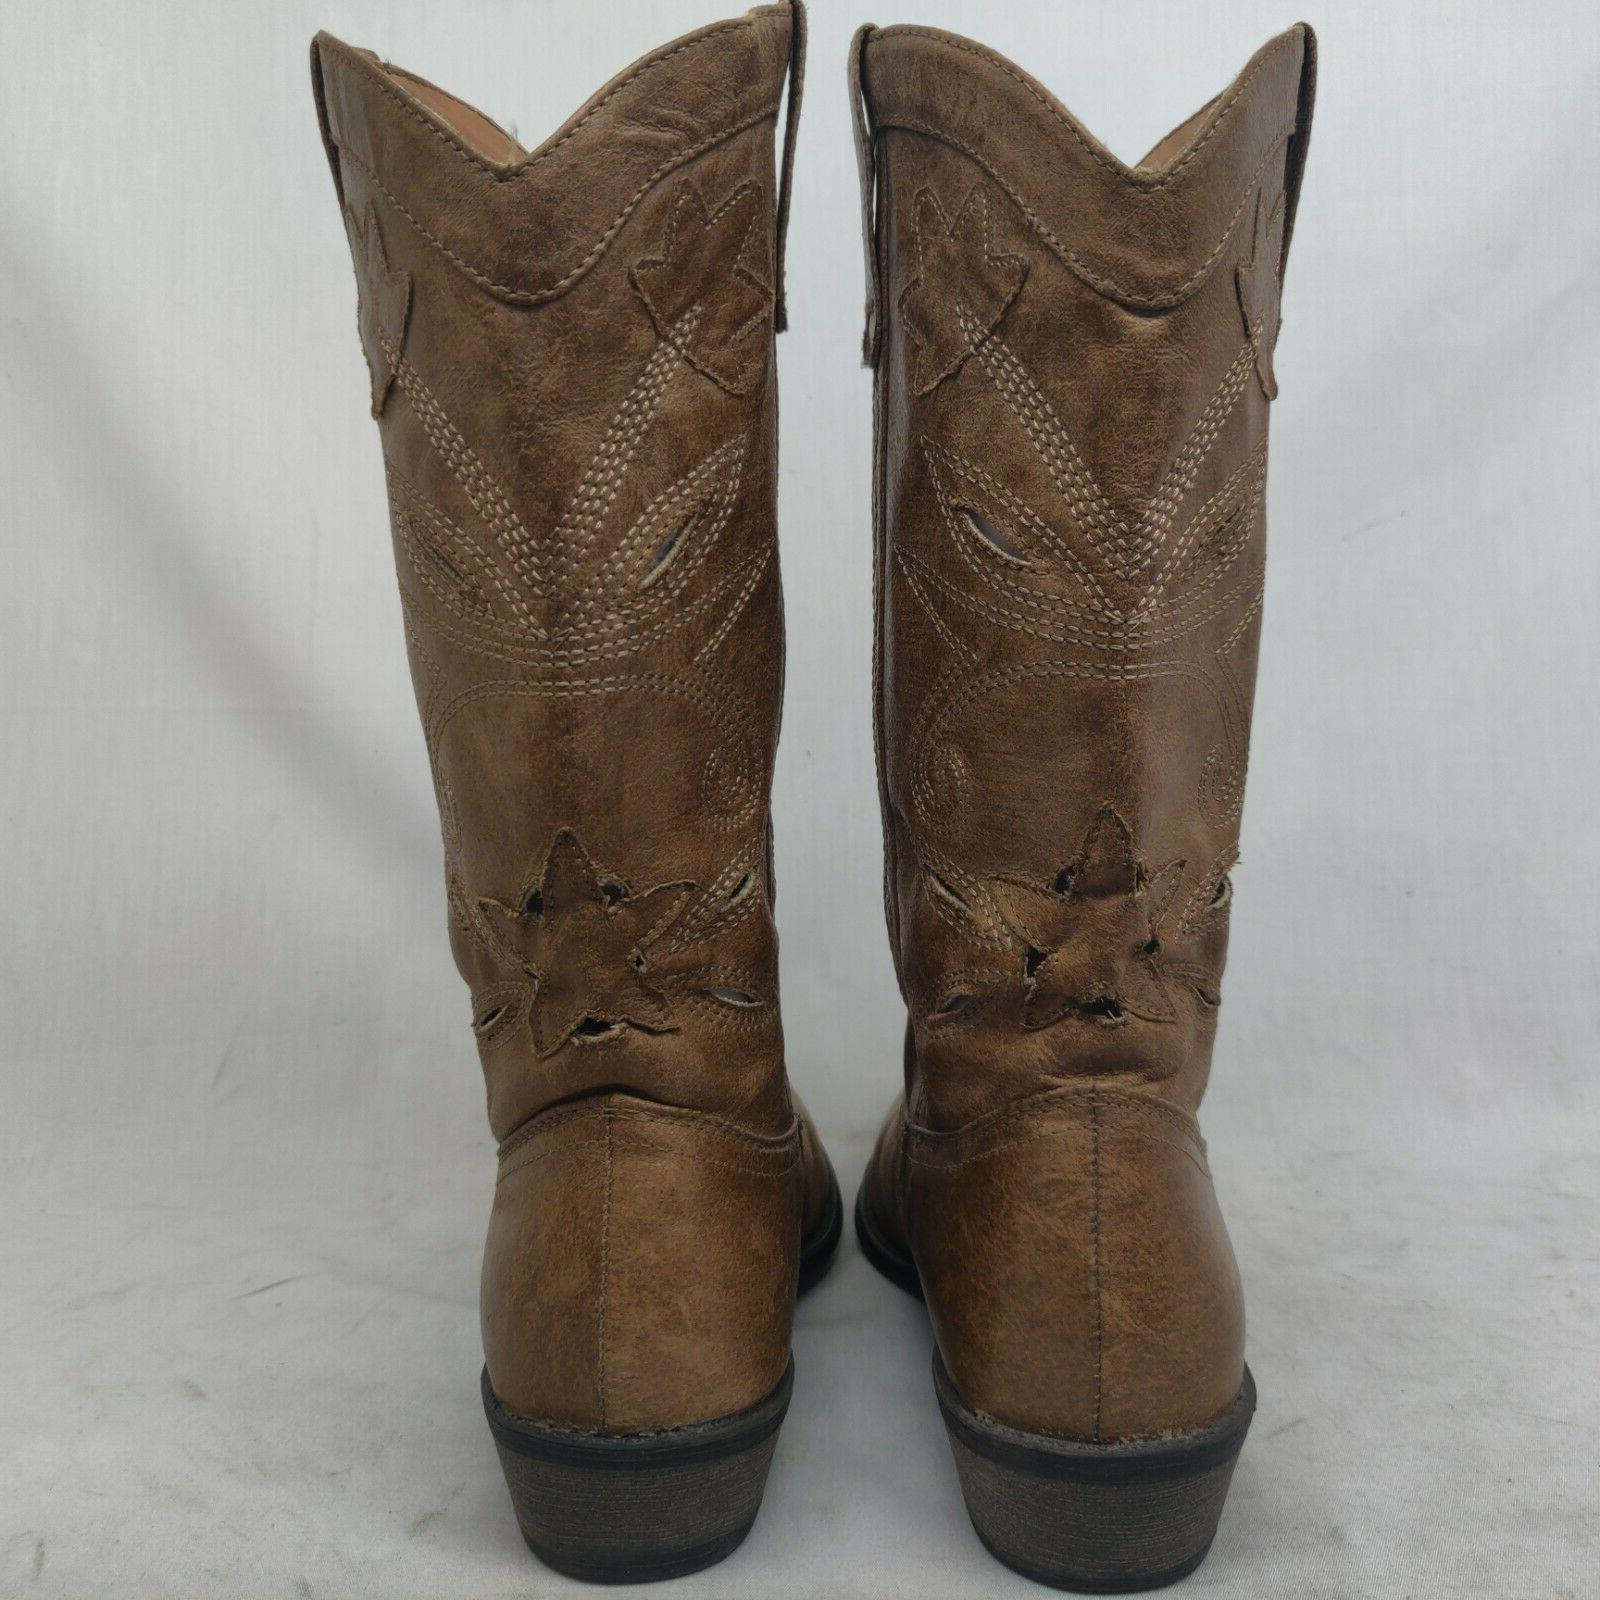 Coconuts Brown Perforated Cowboy Western Boots Size 6